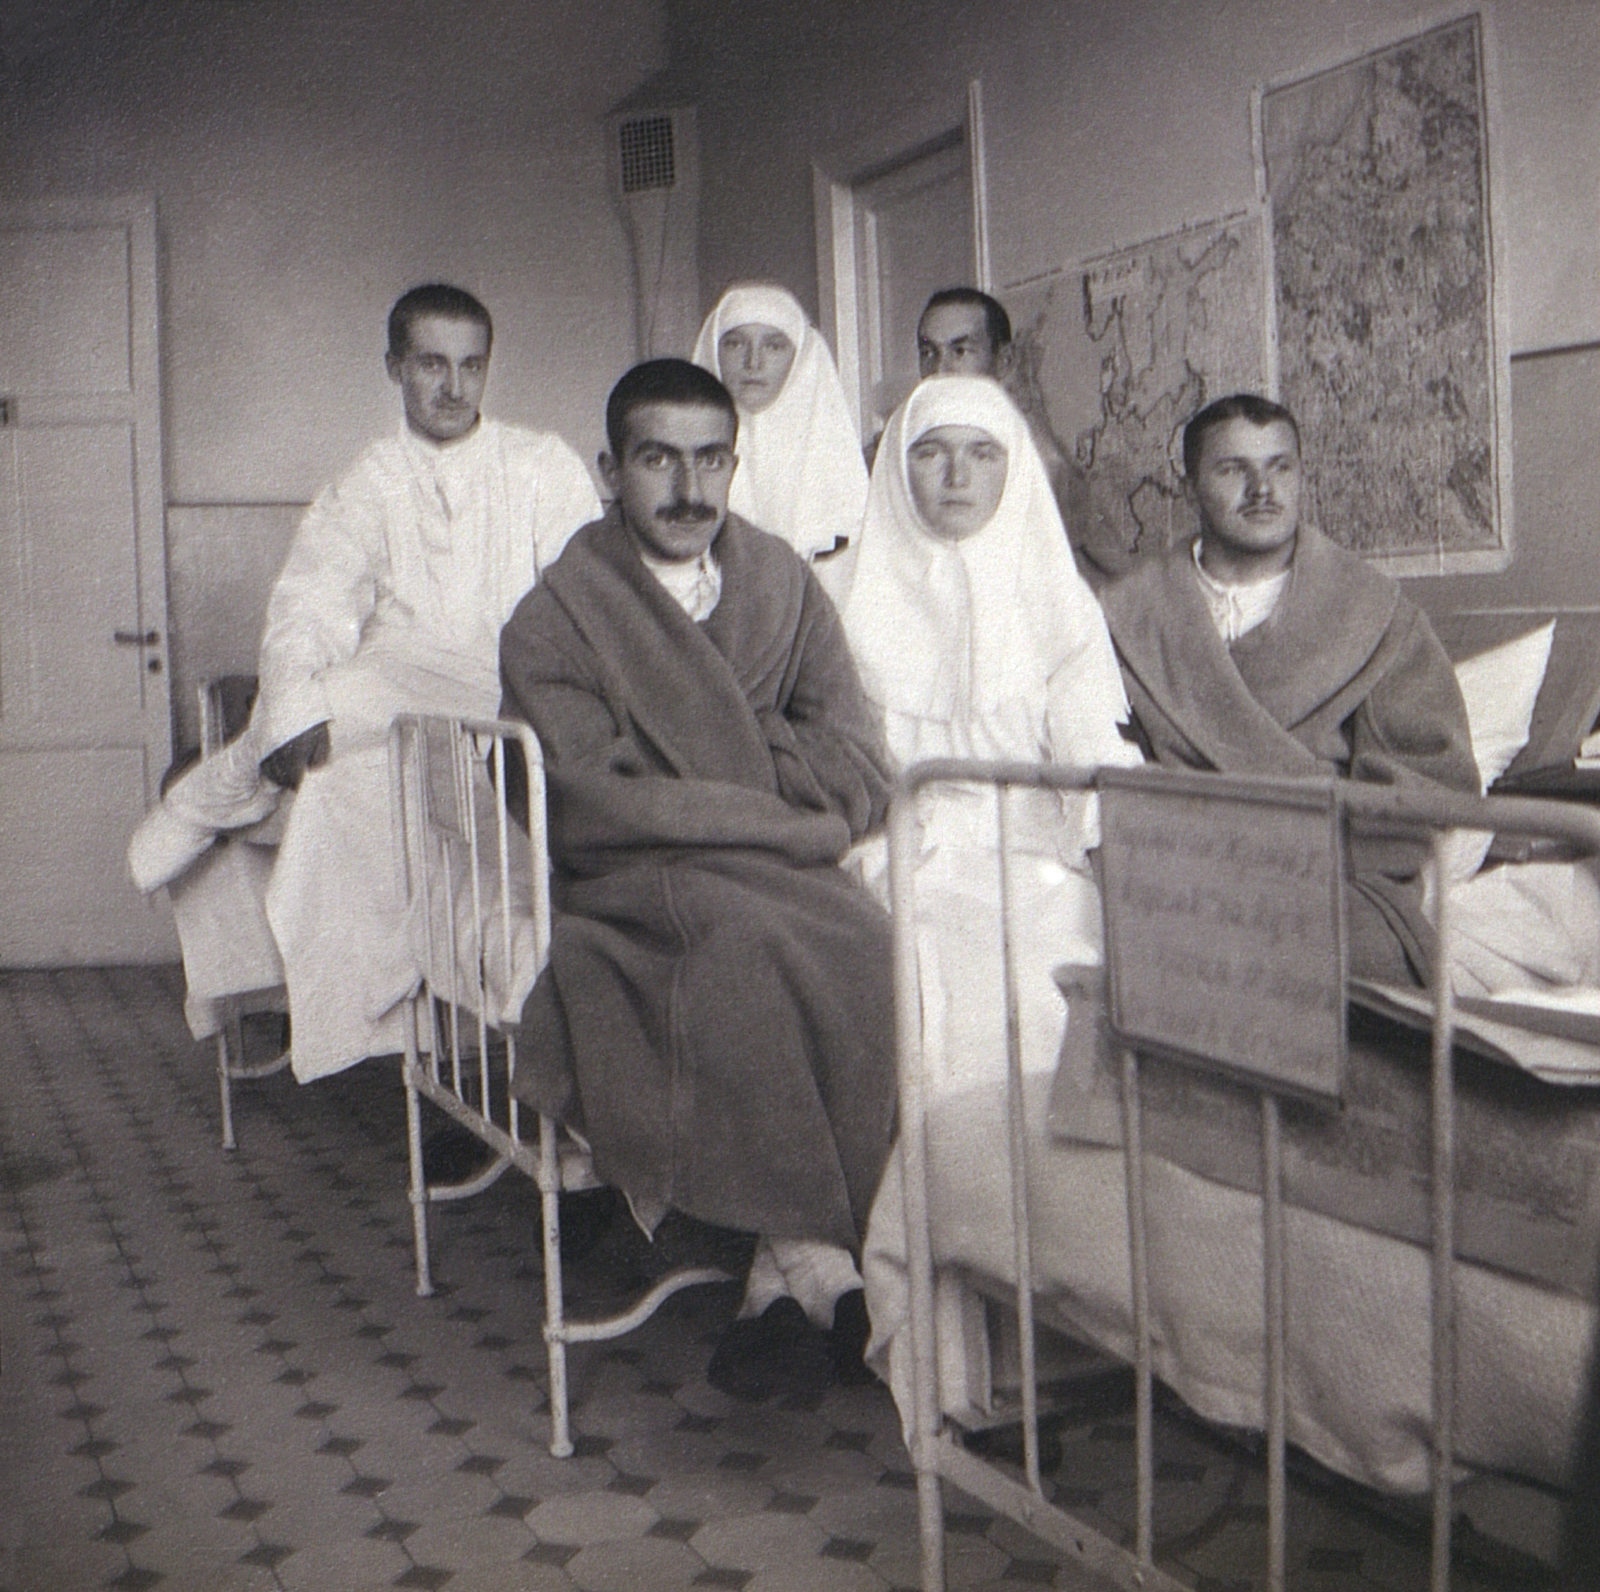 Grand Duchesses Olga, Tatiana in the hospital for wounded.